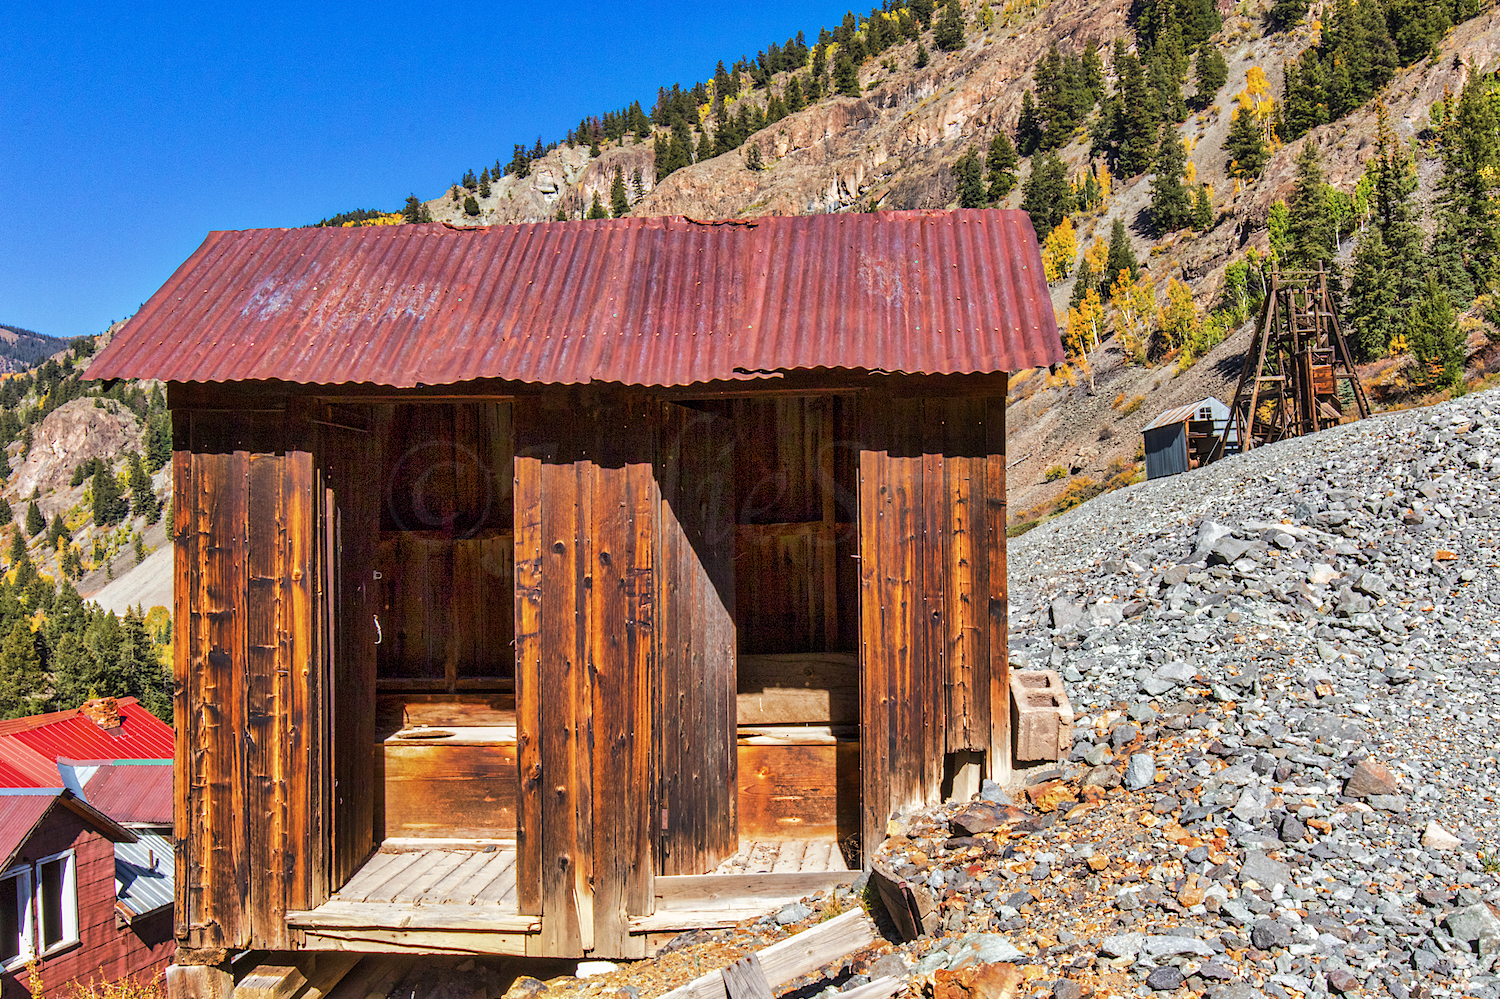 Outhouse at Henson Ghost Town, Image # 5119